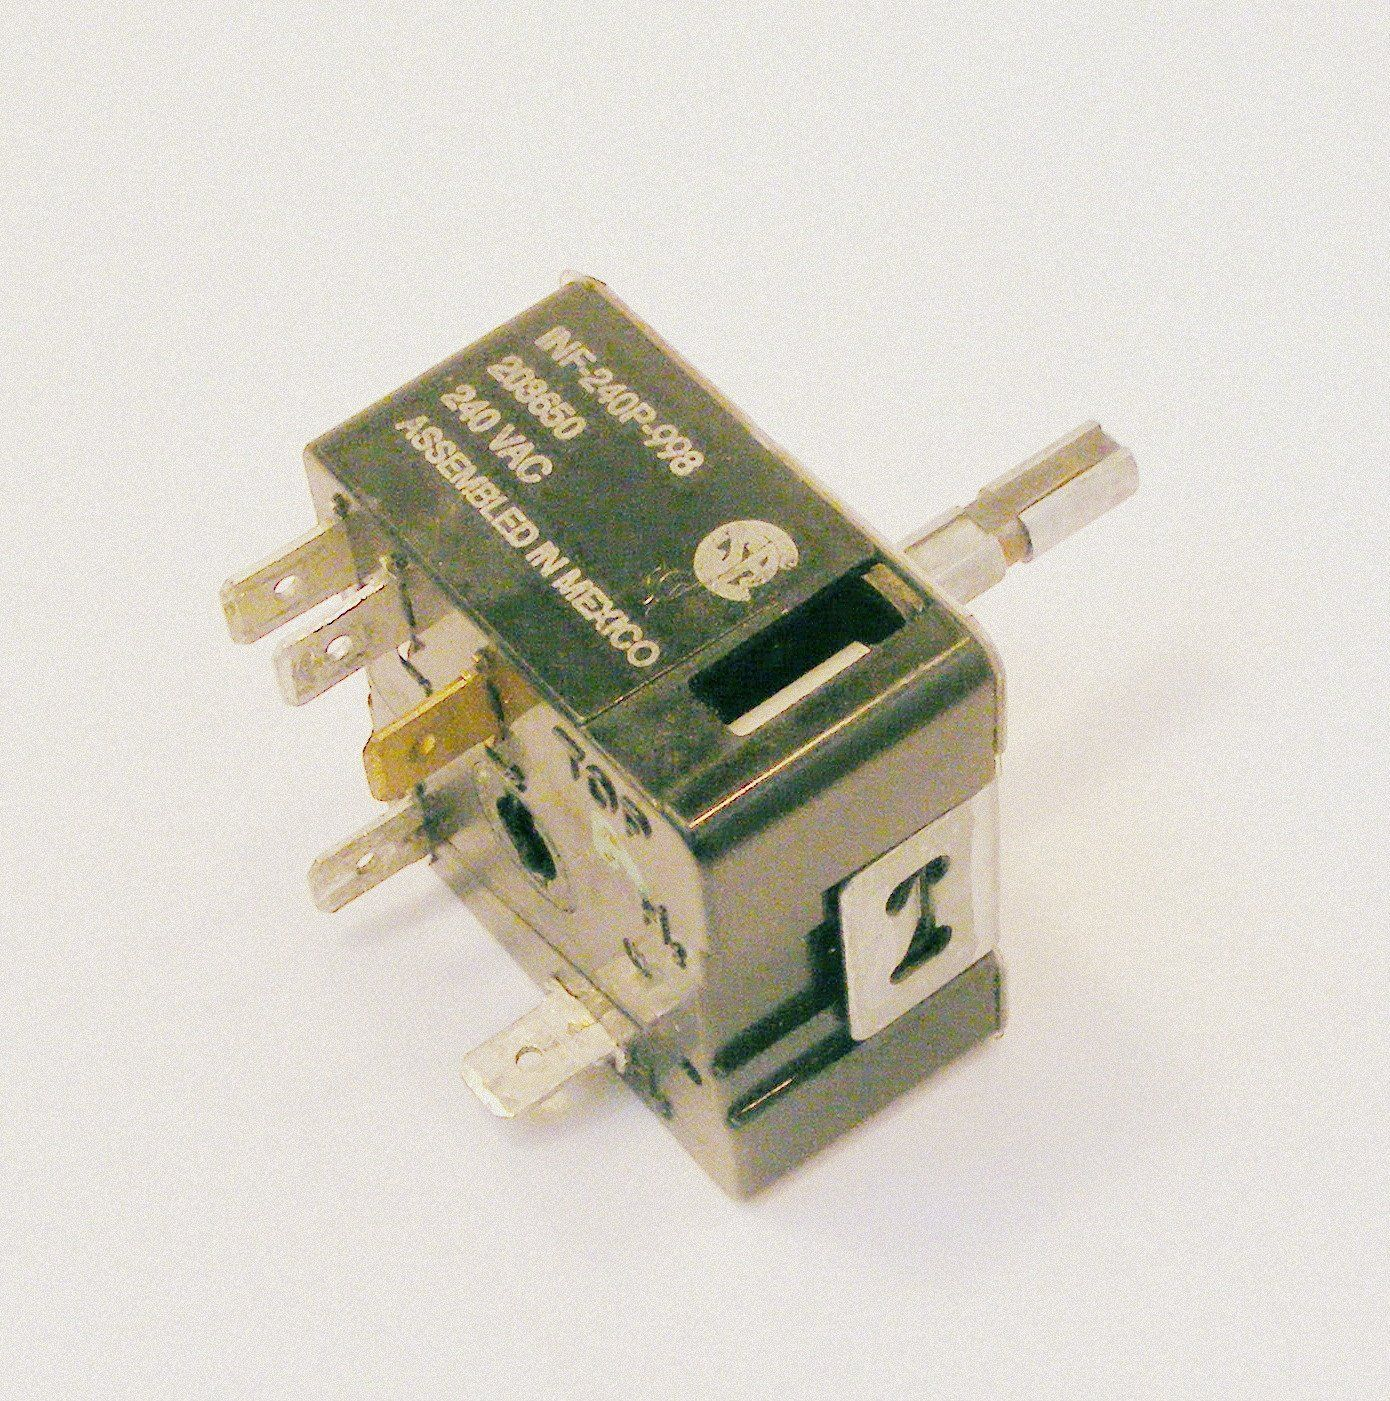 203650 240P998 Jenn Air Range Burner Switch Jenn air